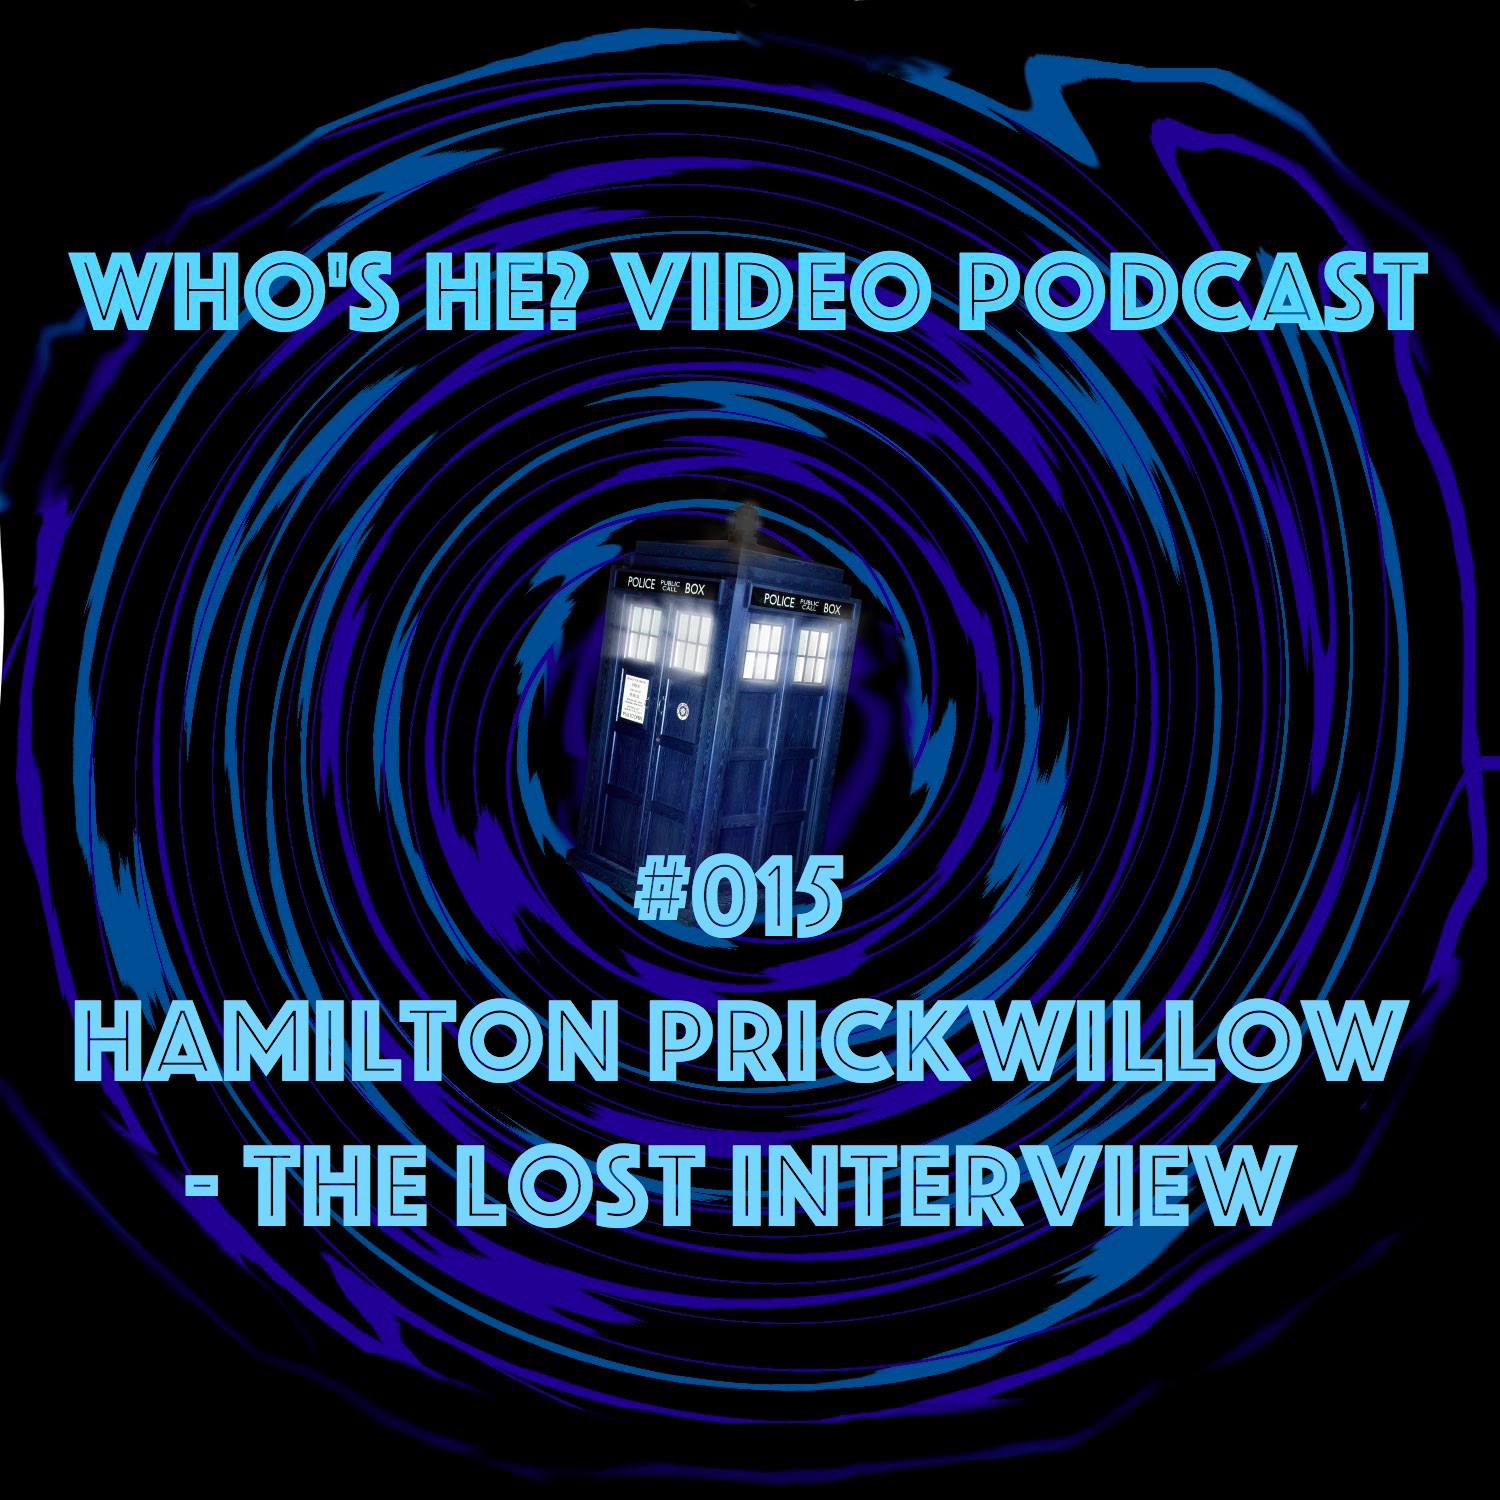 Artwork for Who's He? Video Podcast #015 - Hamilton Prickwillow - The Lost Interview